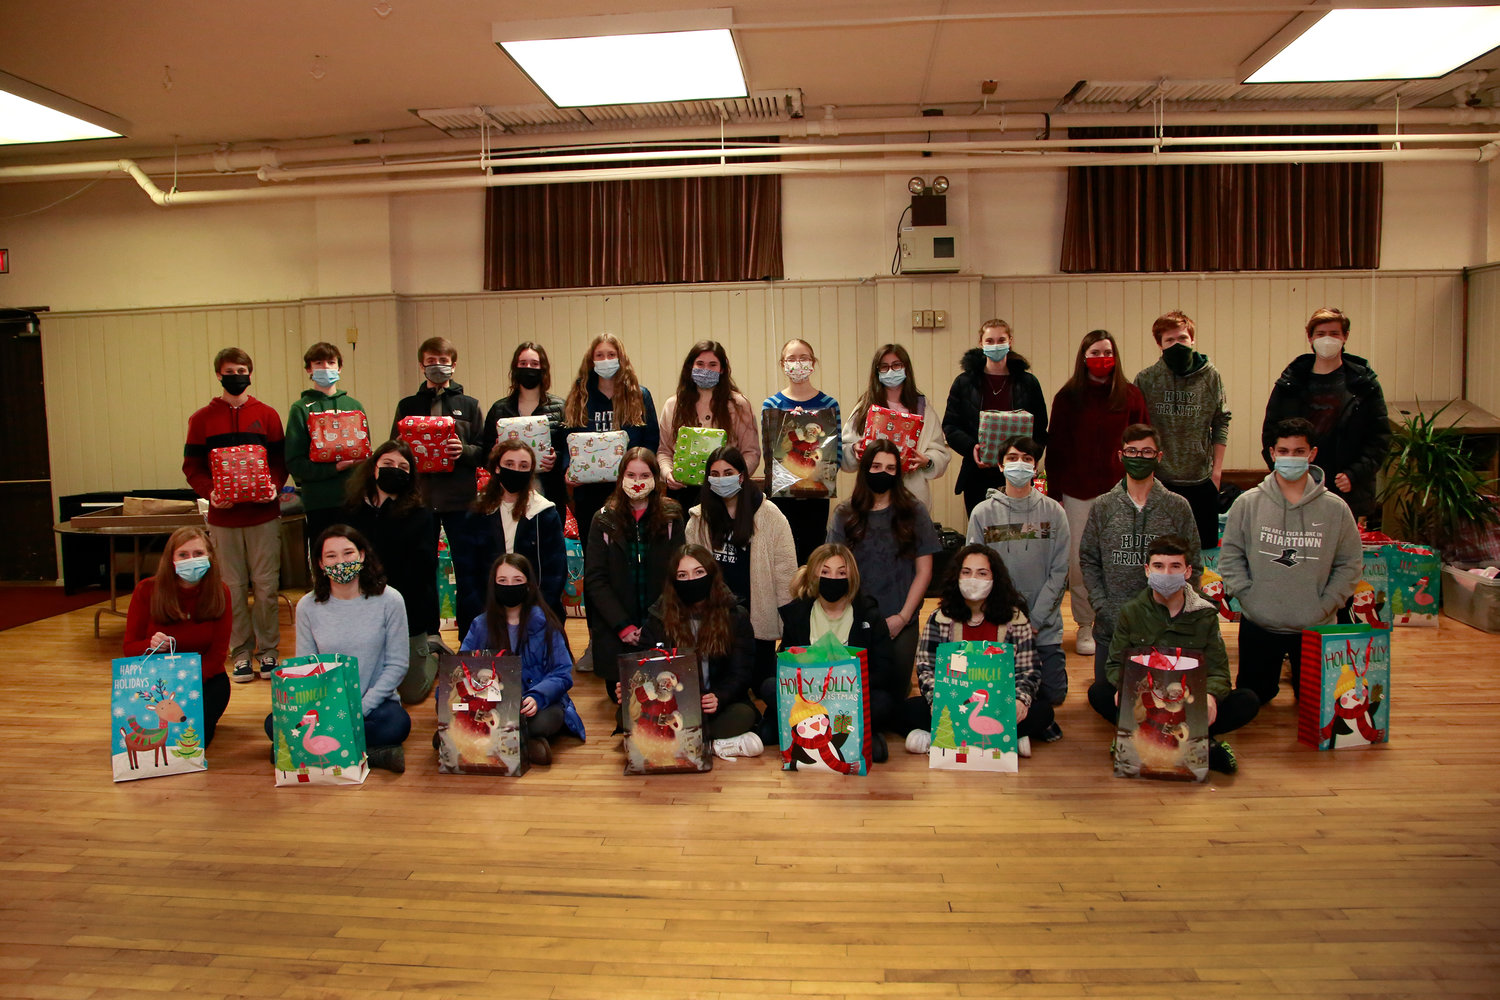 Baldacchino, bottom left, and the Youth Ministry prepared gift bags and monetary donations for the Glory House.